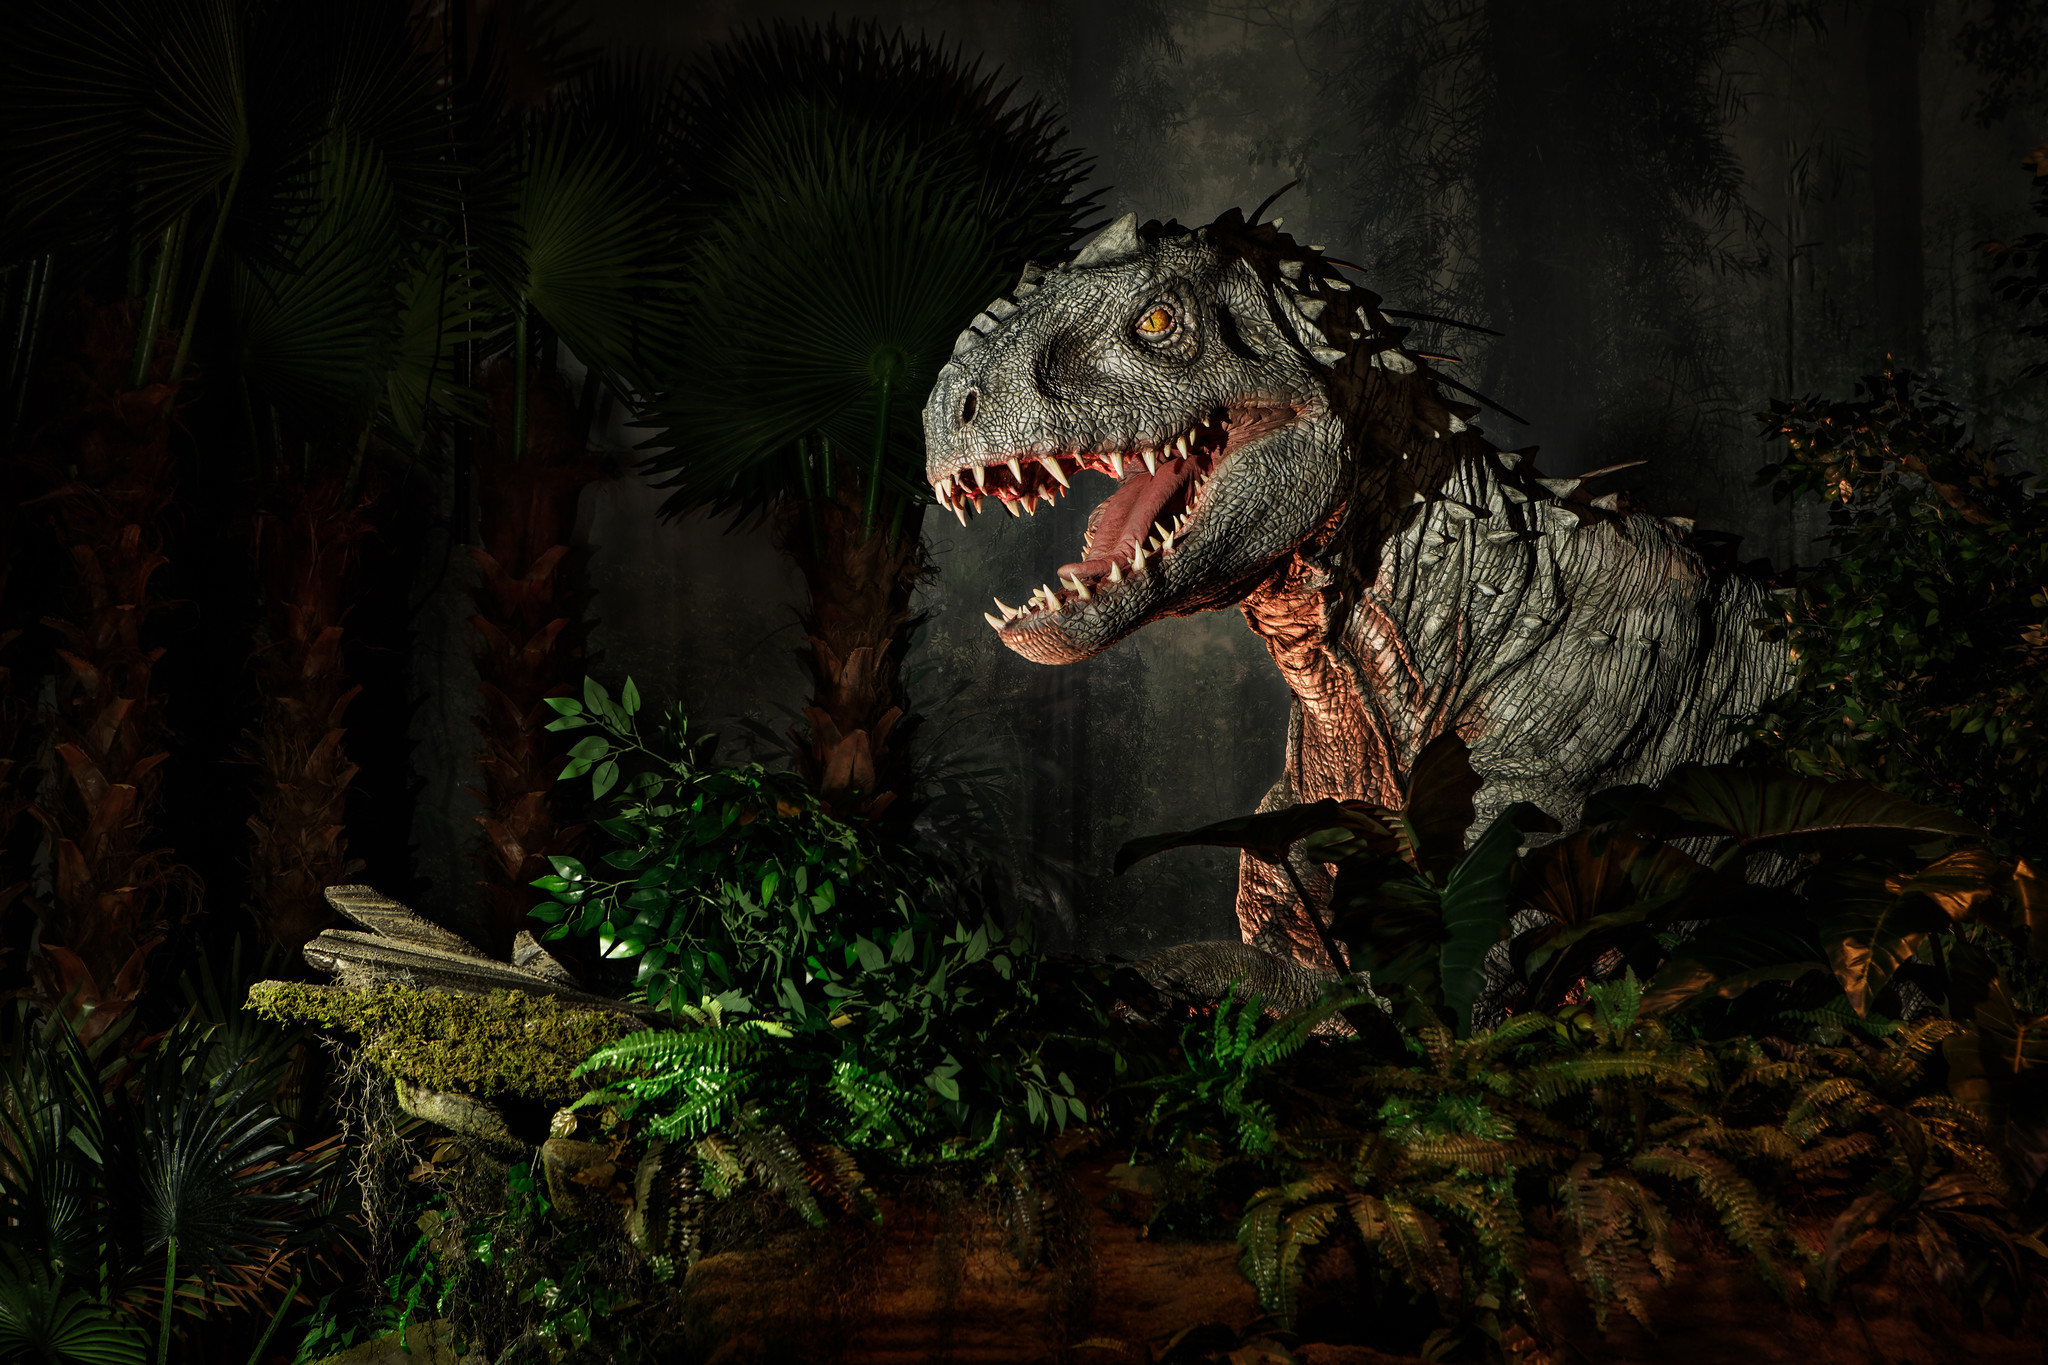 Blockbuster 'Jurassic World' exhibition will bring dinosaur park to Field Museum